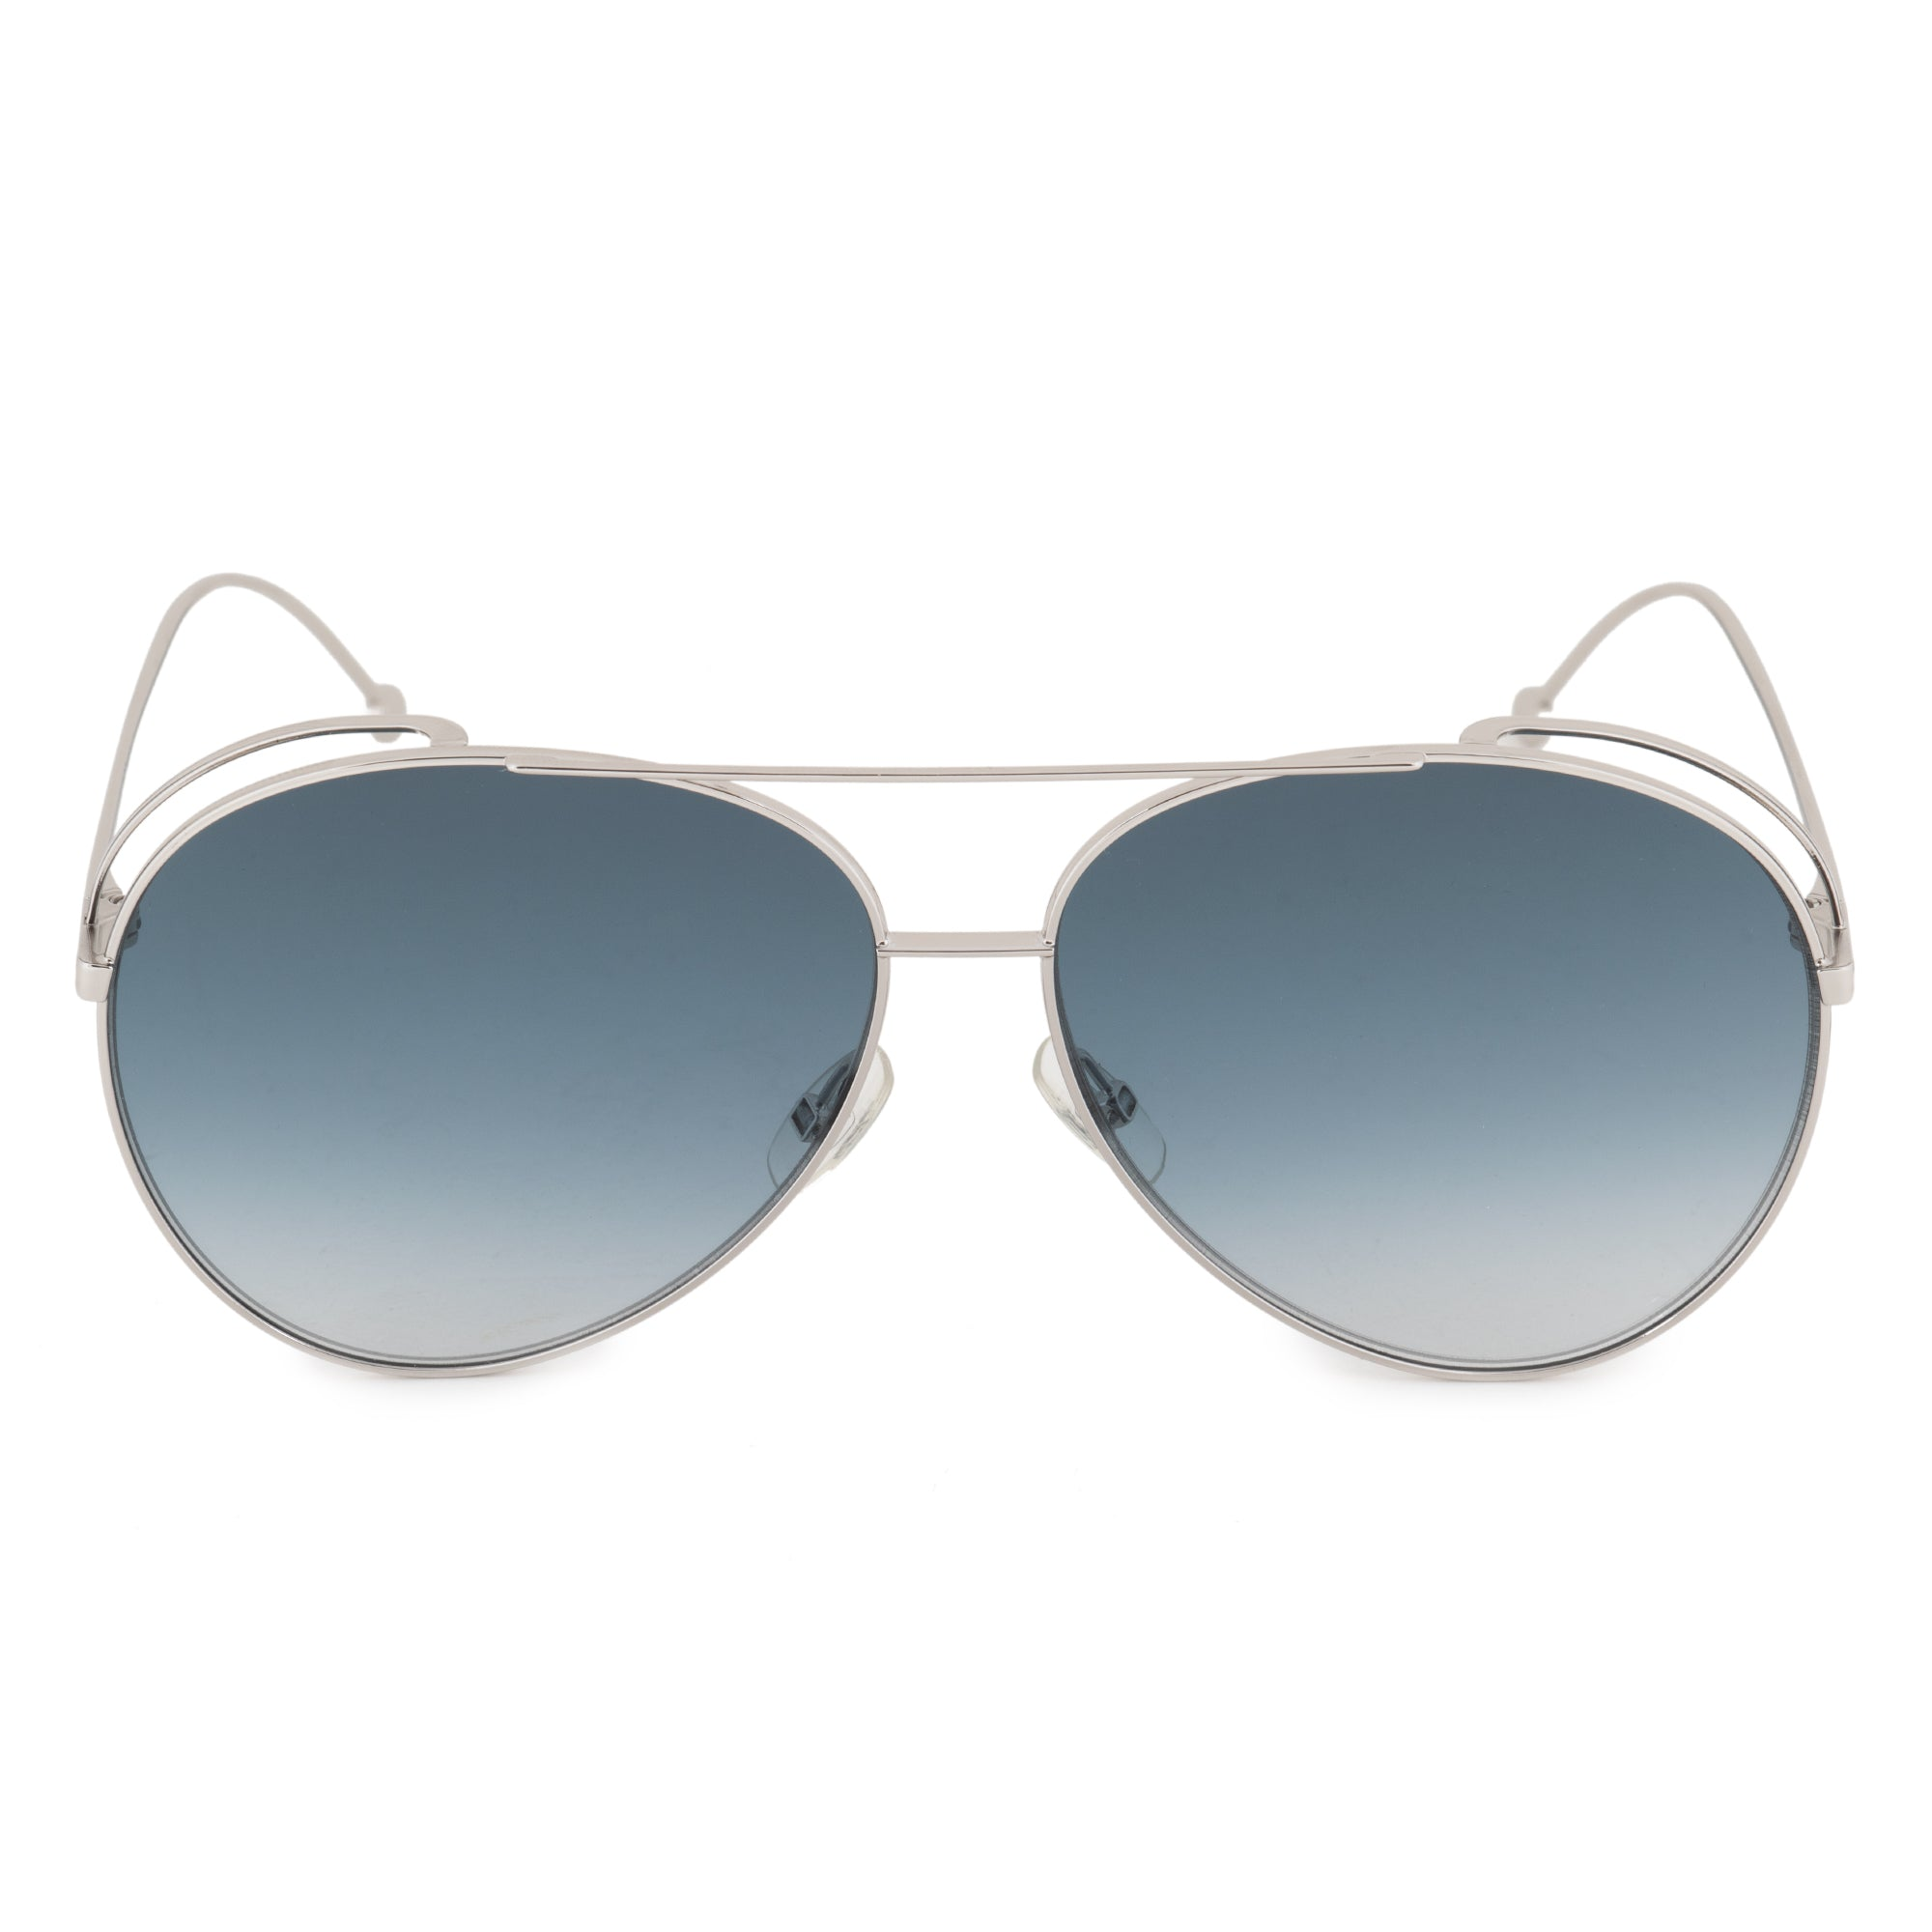 Fendi Run Away FF 0286/S 010/08 63 Aviator Sunglasses